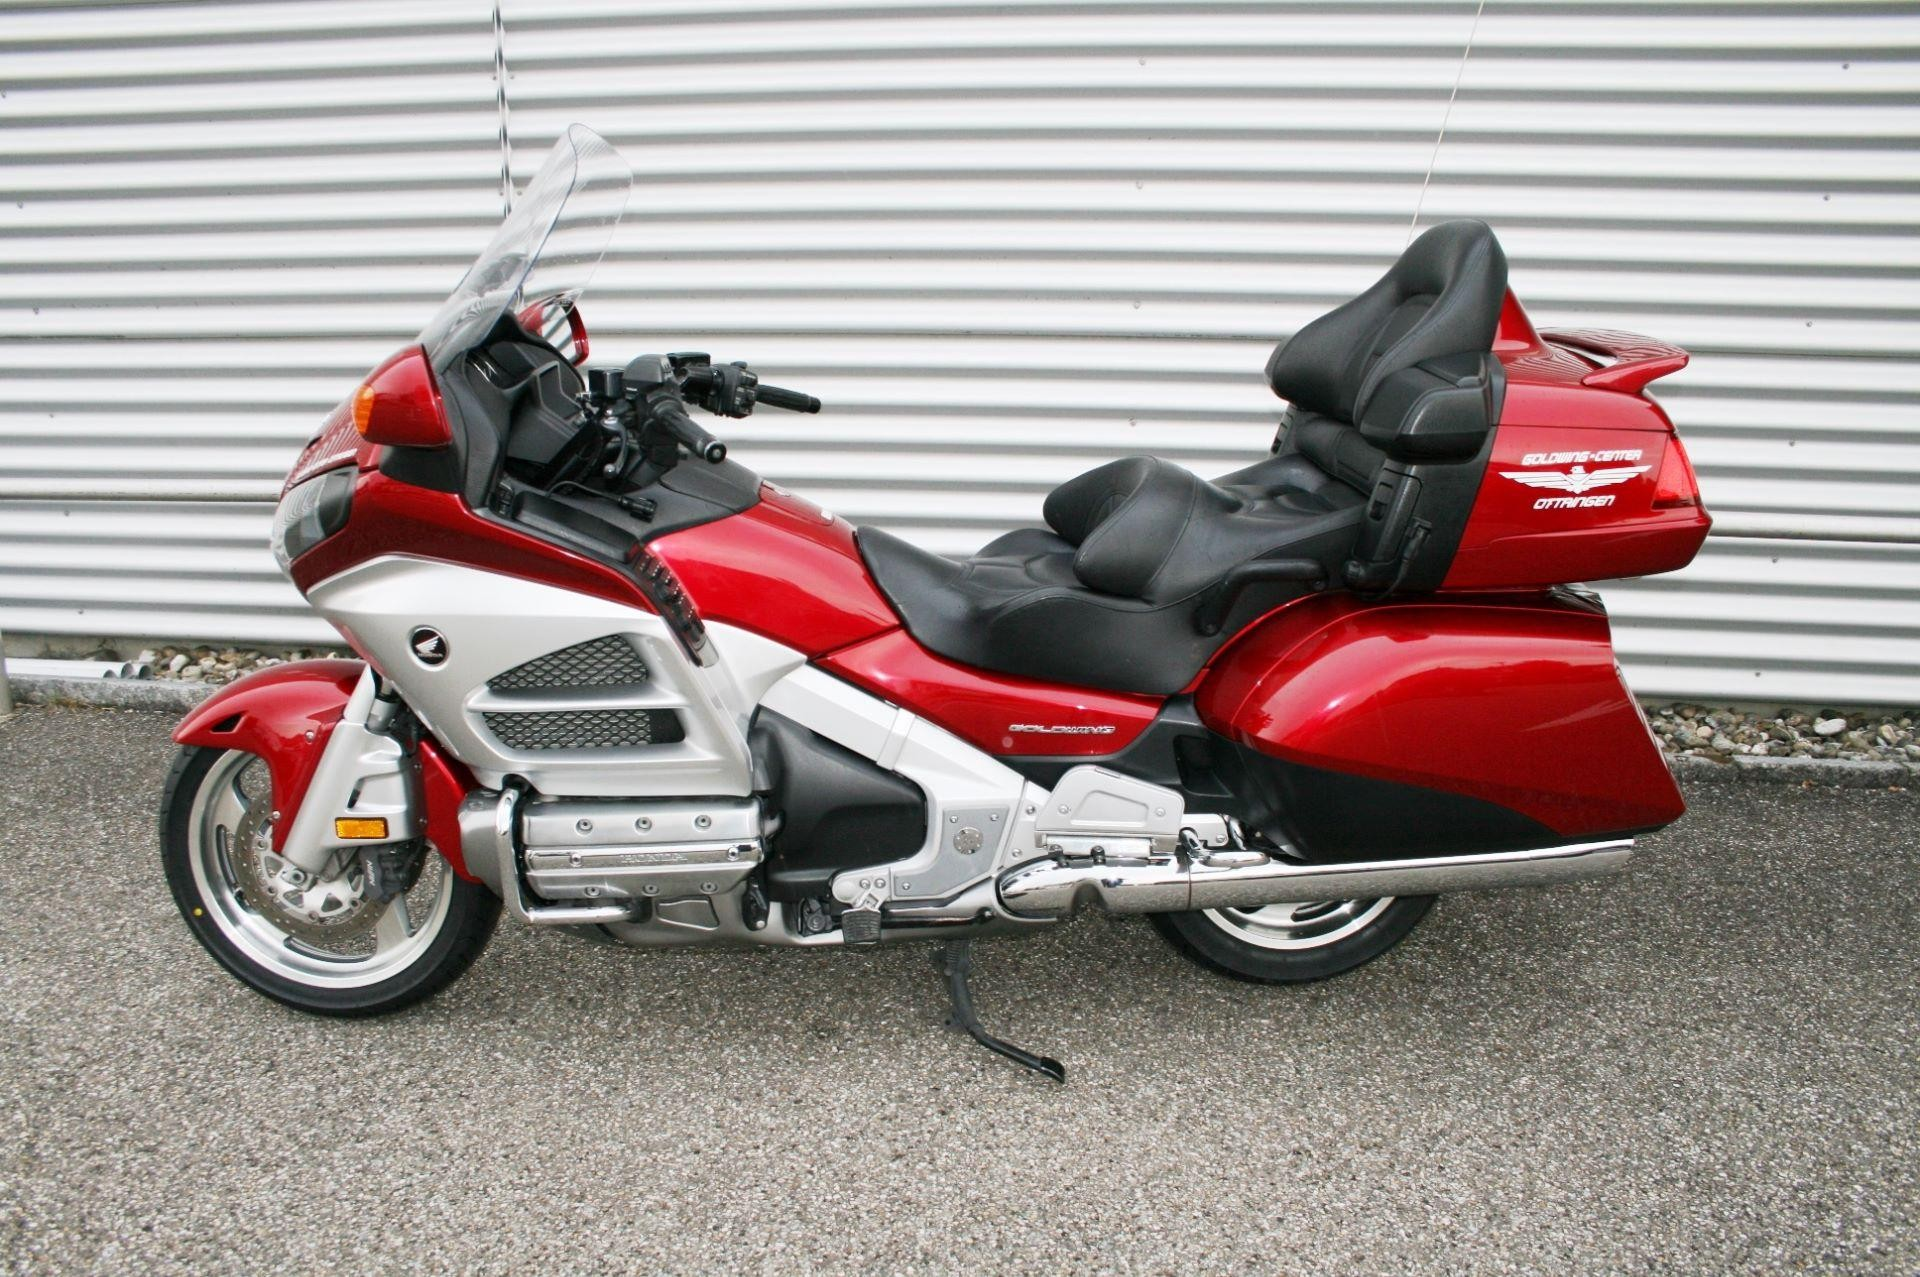 Goldwing 1800 Occasion. honda gold wing 1800 d 39 occasion ...